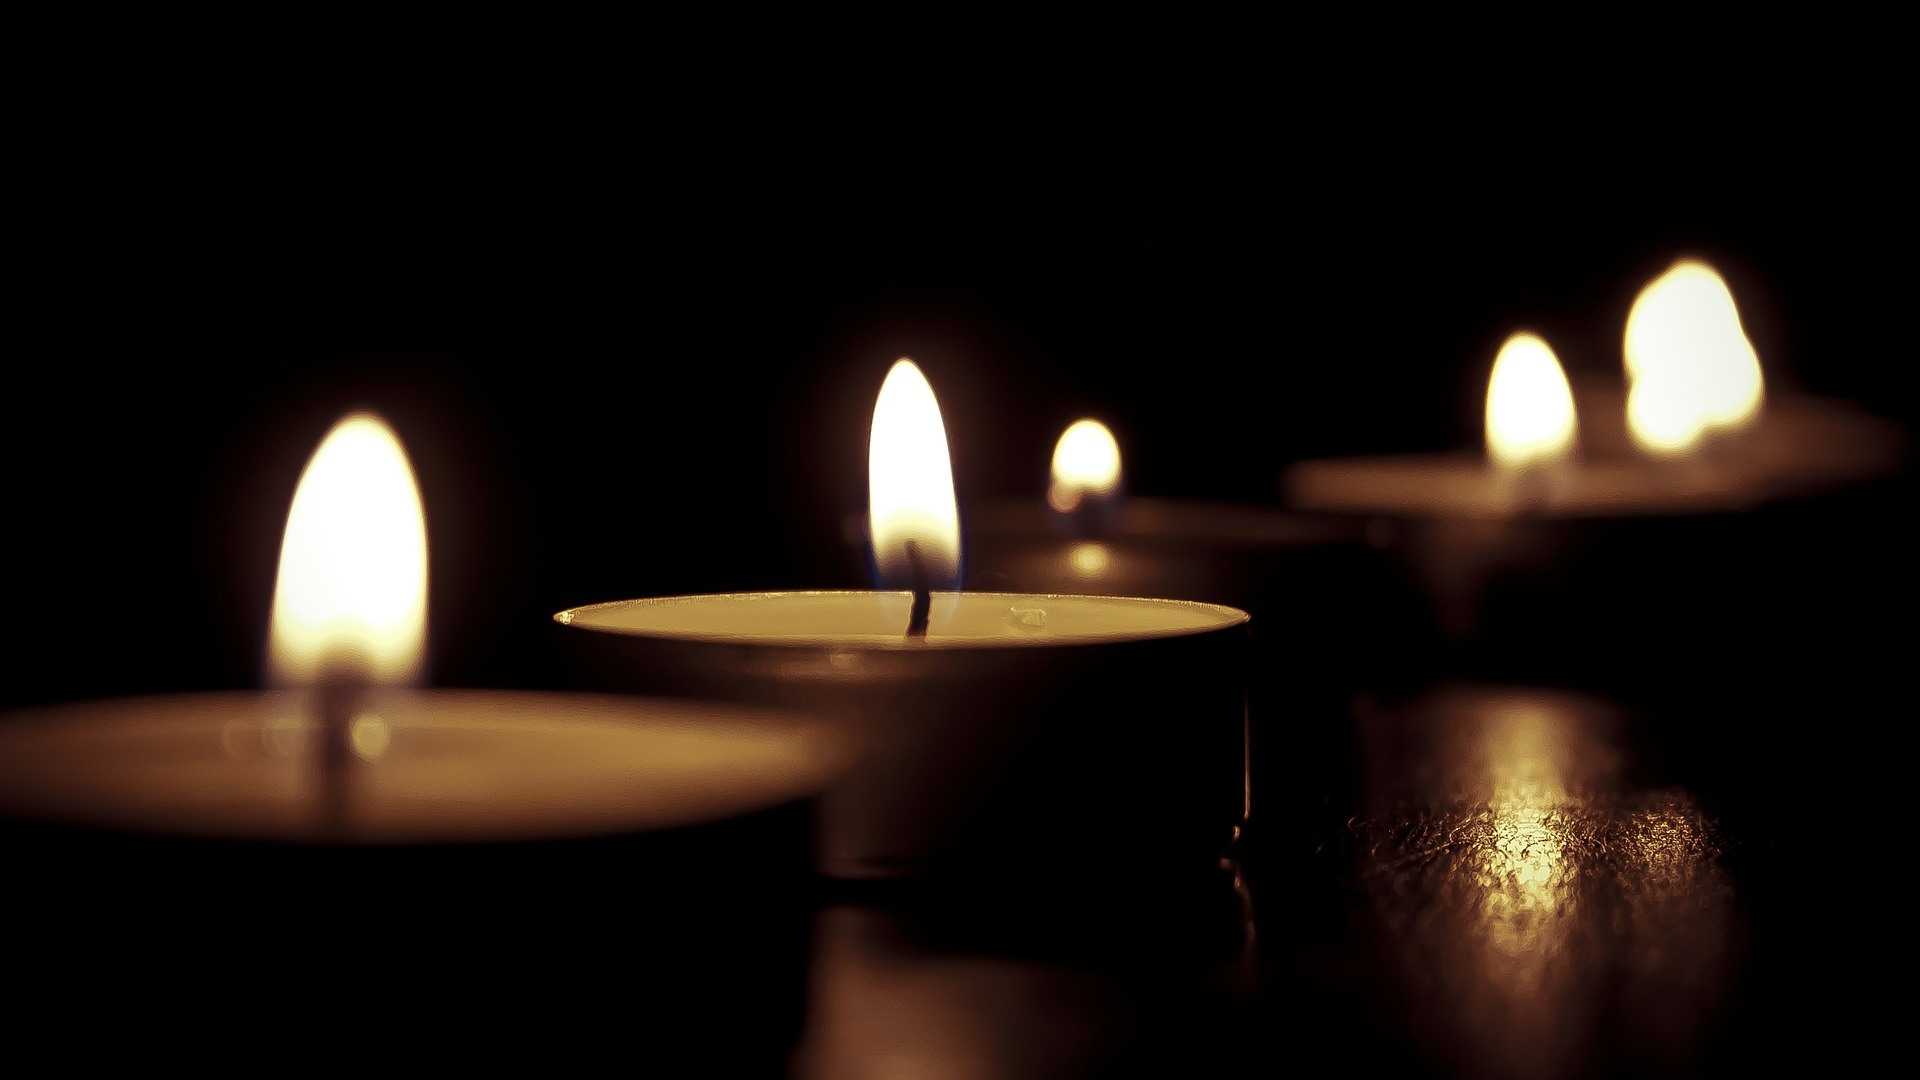 Candles burning in the dark